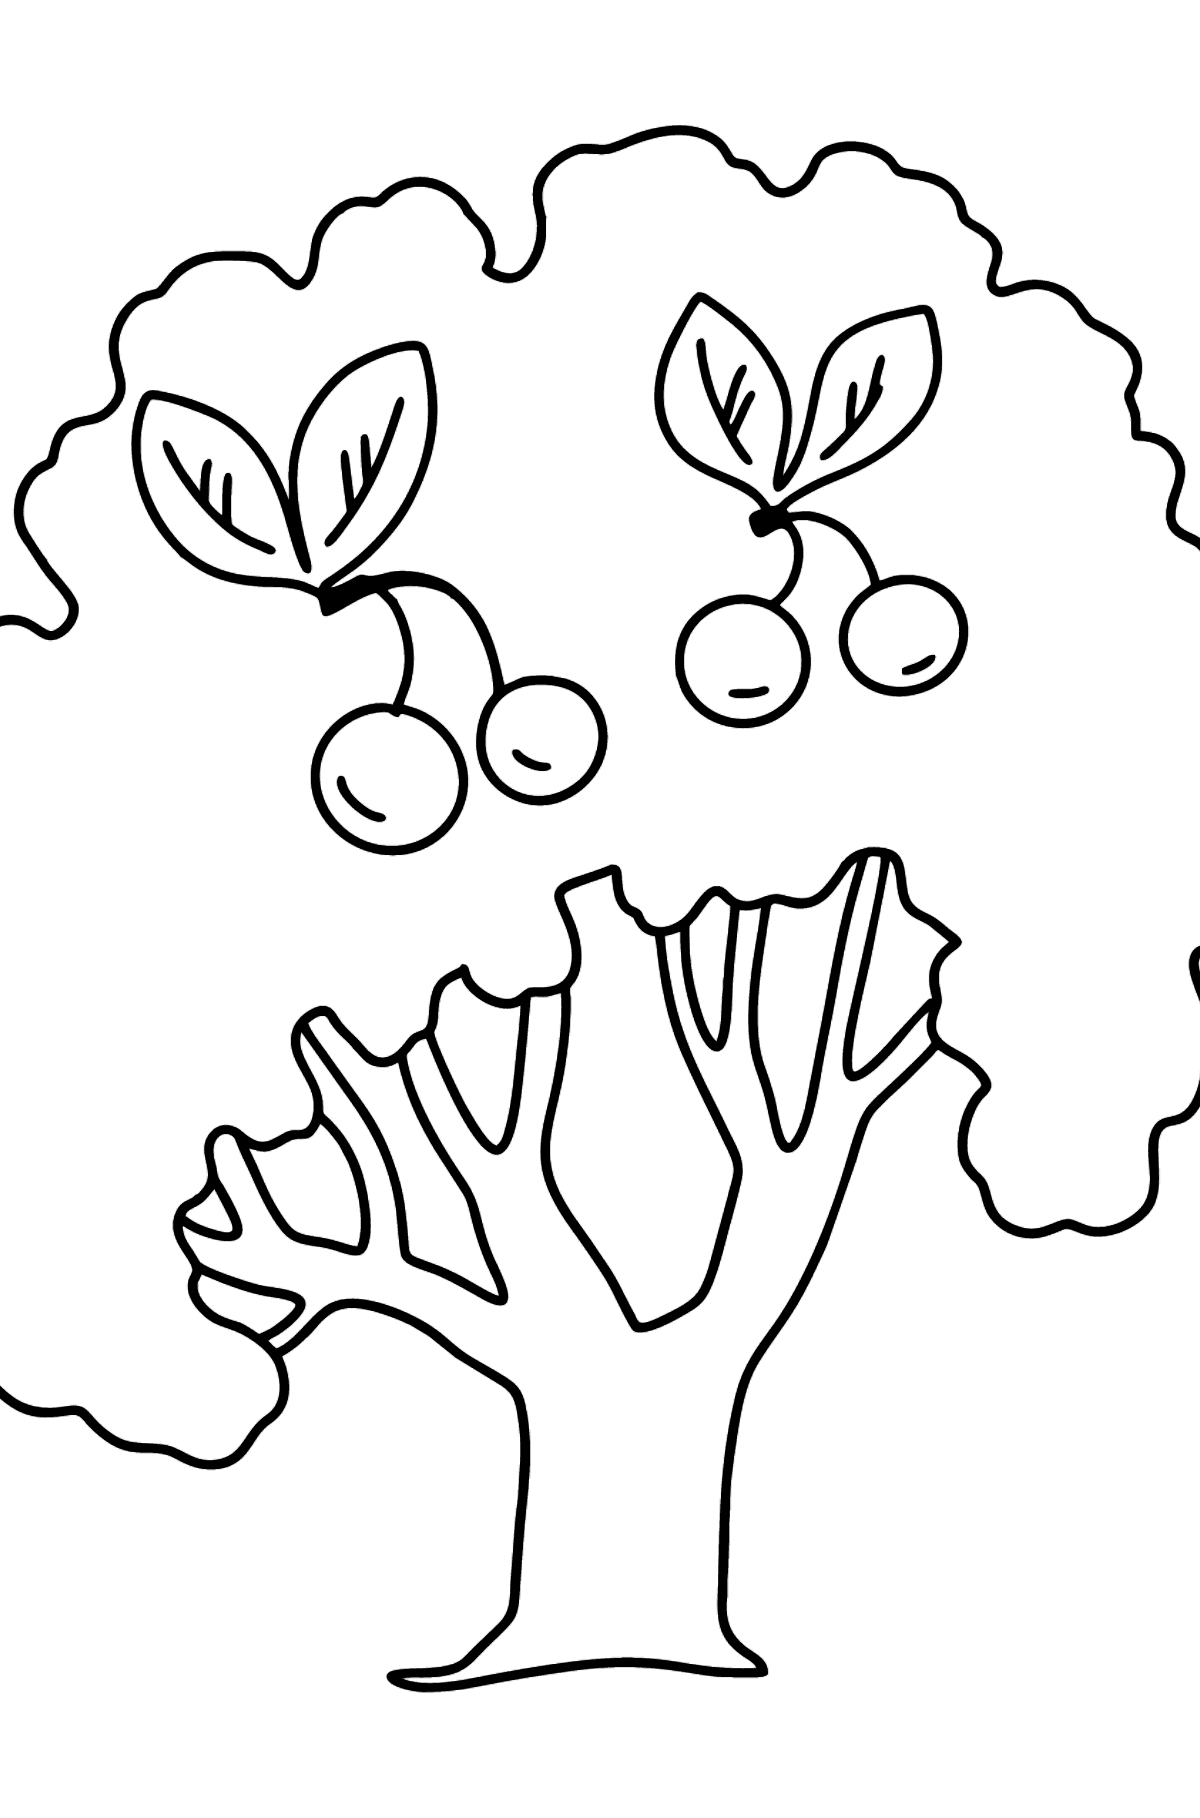 Cherry Tree coloring page - Coloring Pages for Kids